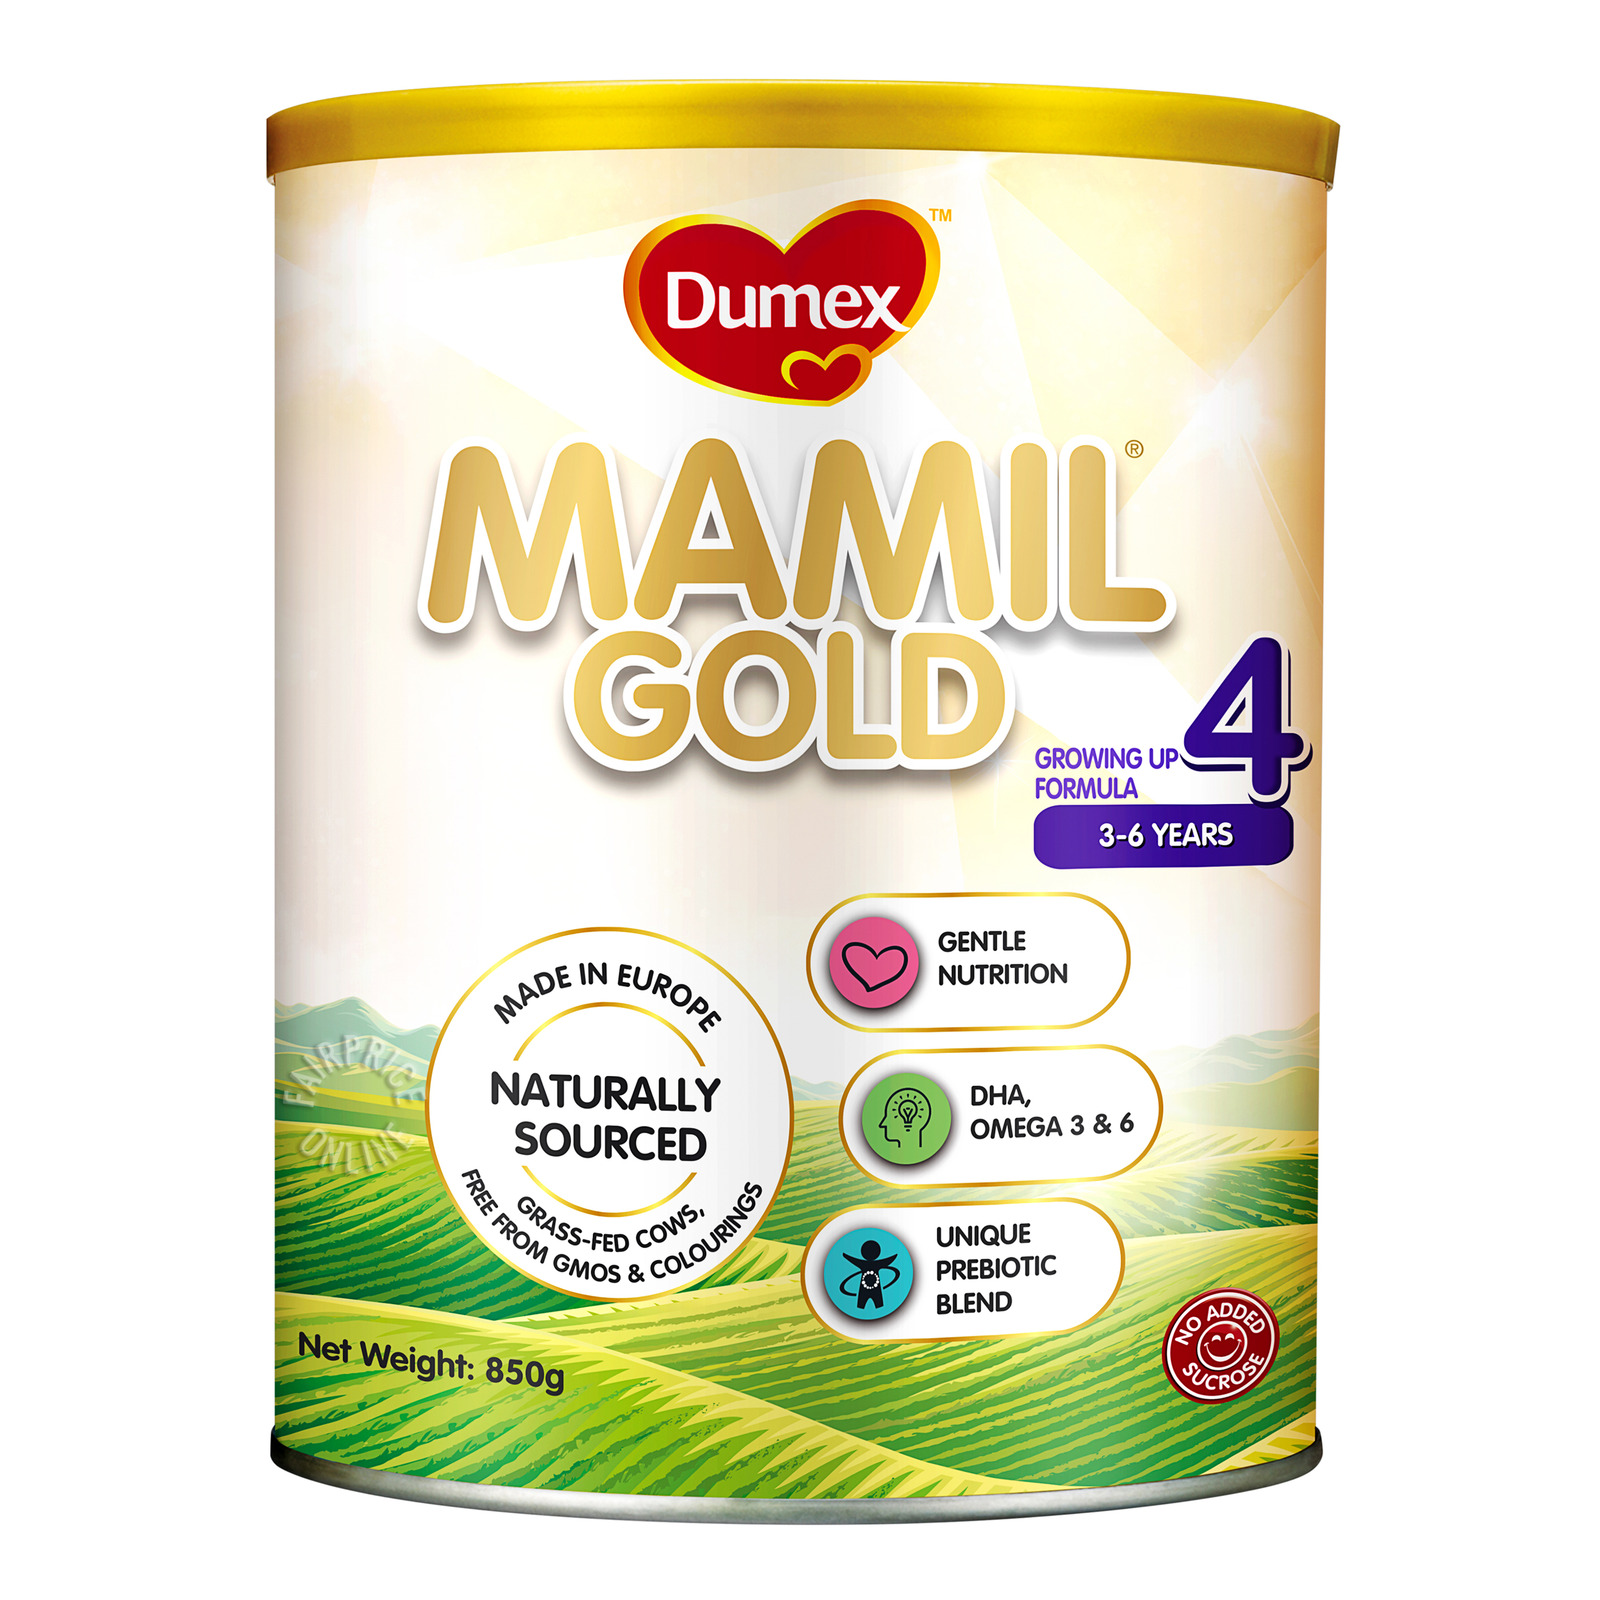 Dumex Mamil Gold Stage 3 Growing Up Baby Milk Formula